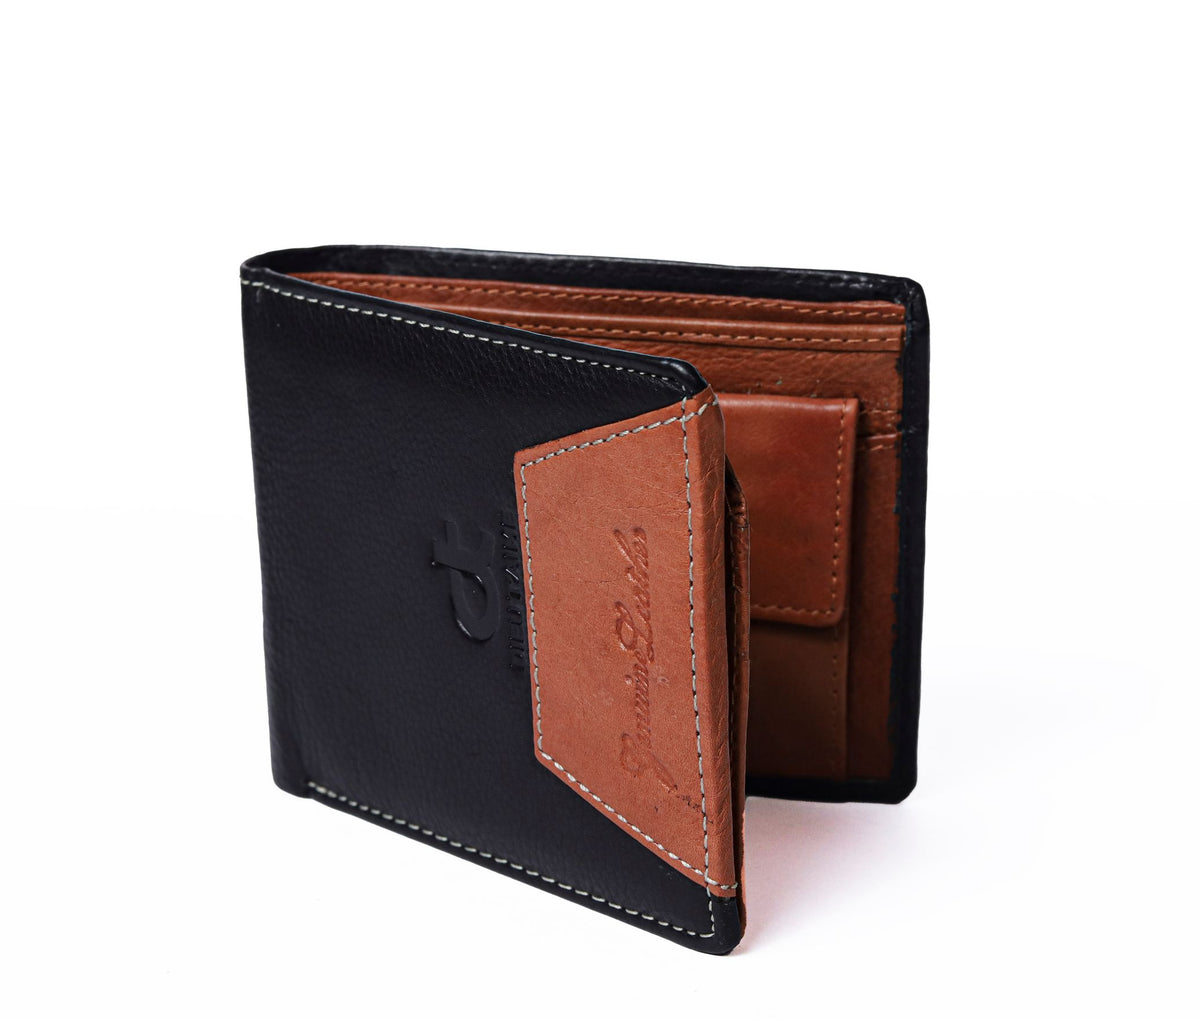 BLACK / BROWN TRENDING WALLET